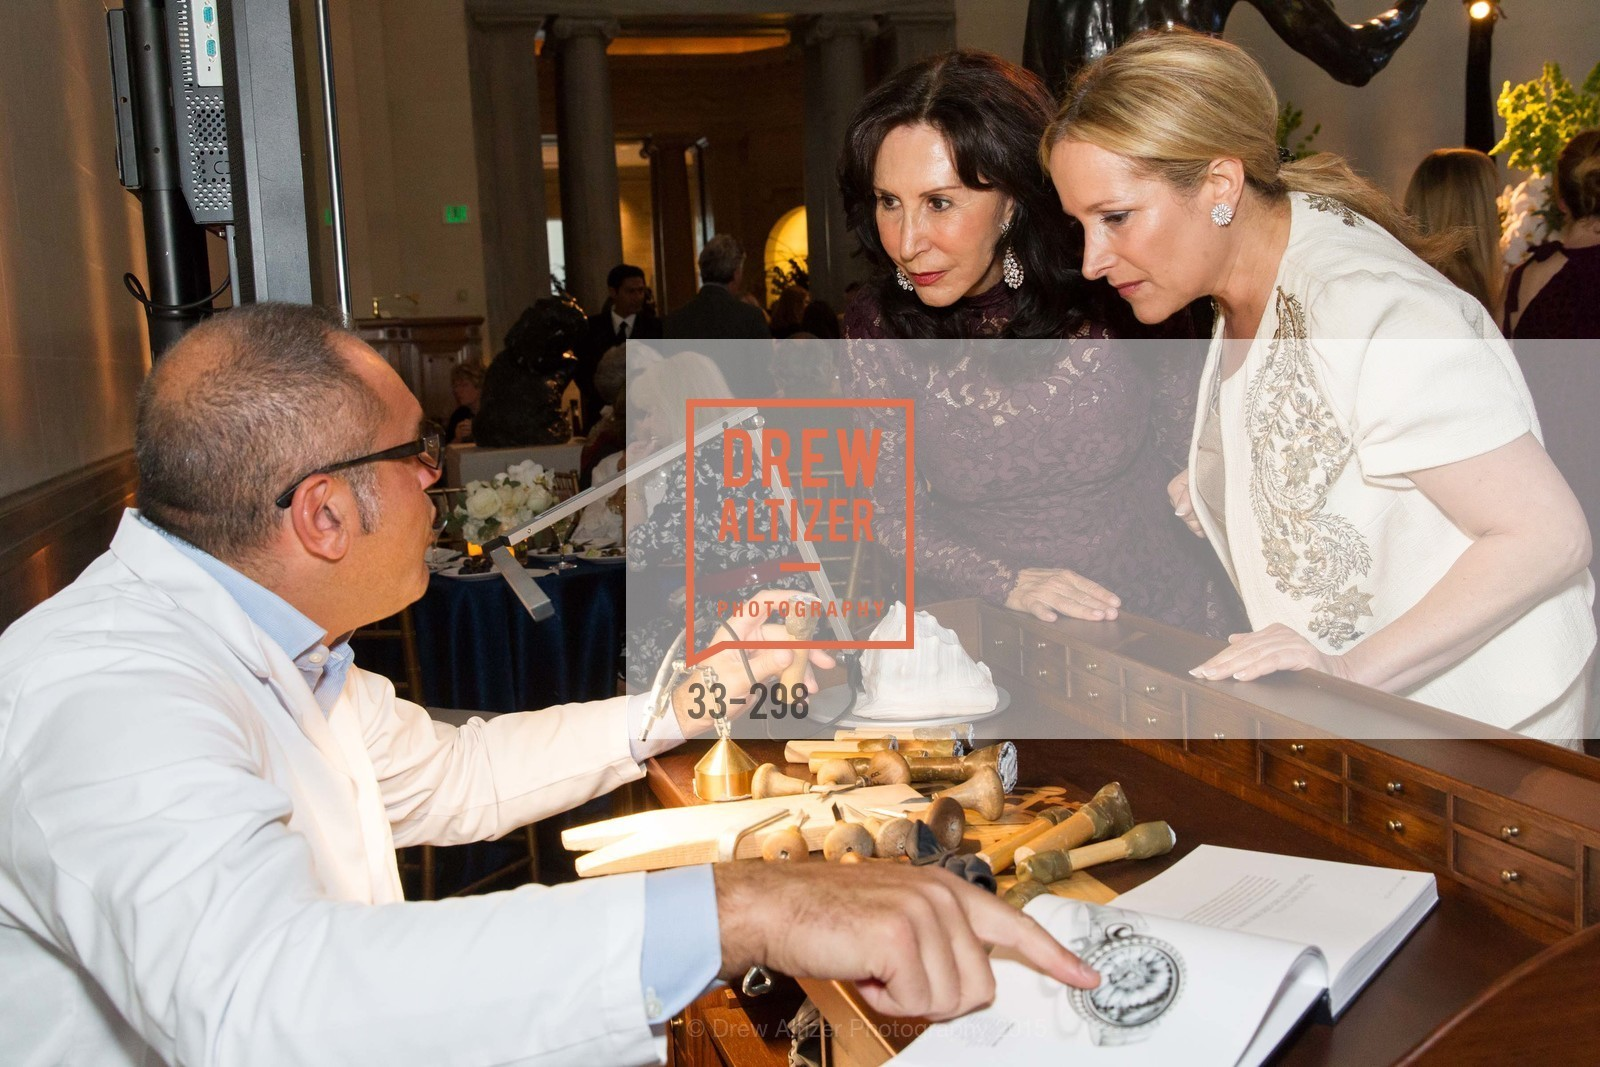 Carolyn Chandler, Lorre Erlick, Breguet and Ancient Luxury Donor Opening Reception at Legion of Honor, Legion of Honor, September 17th, 2015,Drew Altizer, Drew Altizer Photography, full-service event agency, private events, San Francisco photographer, photographer California